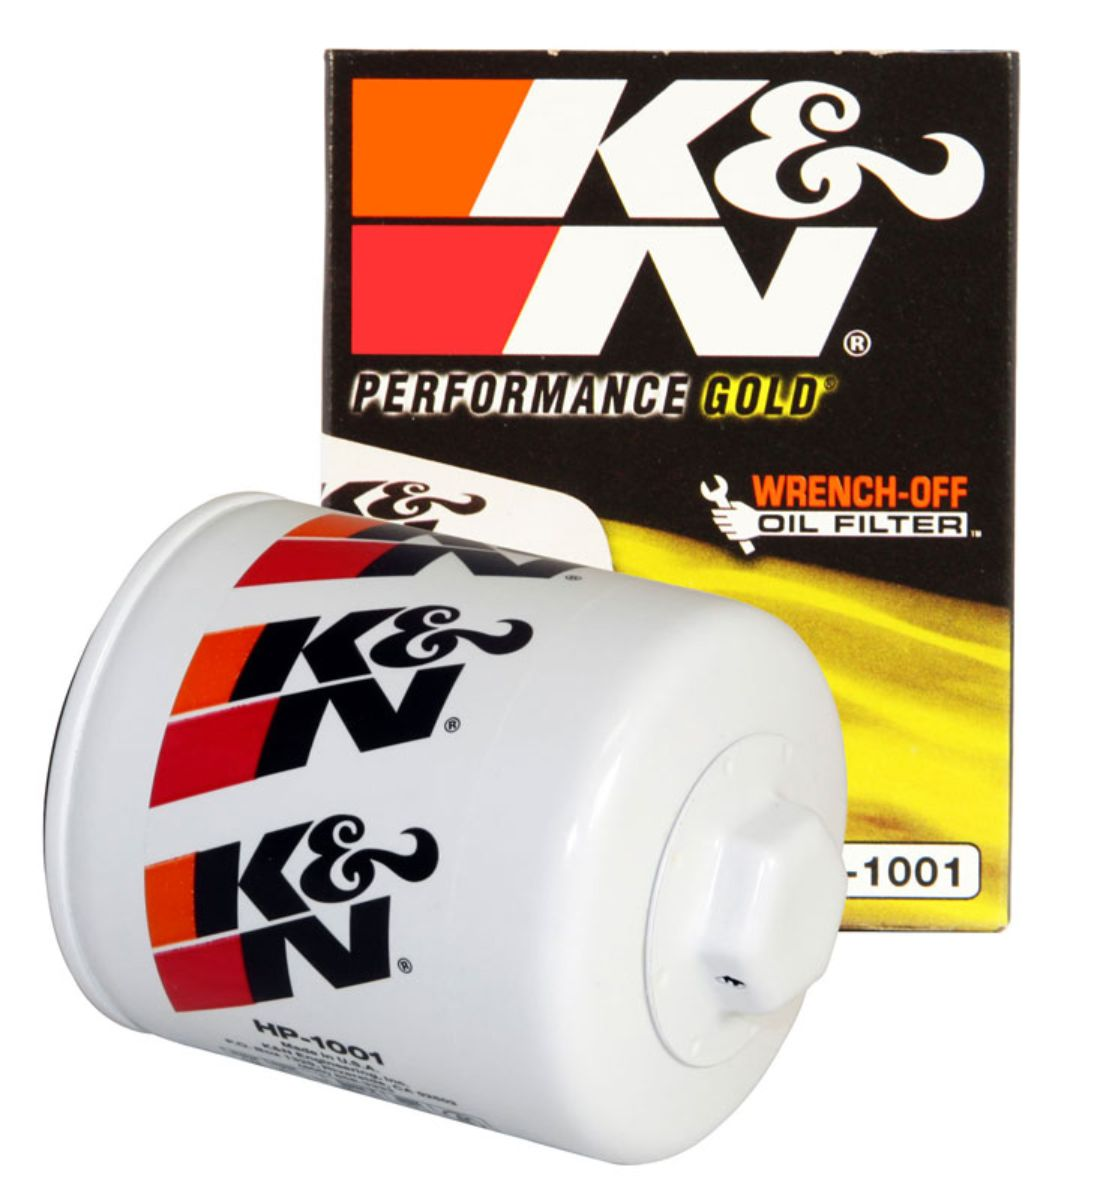 DR 600 1986 High Quality Replacement Oil Filter